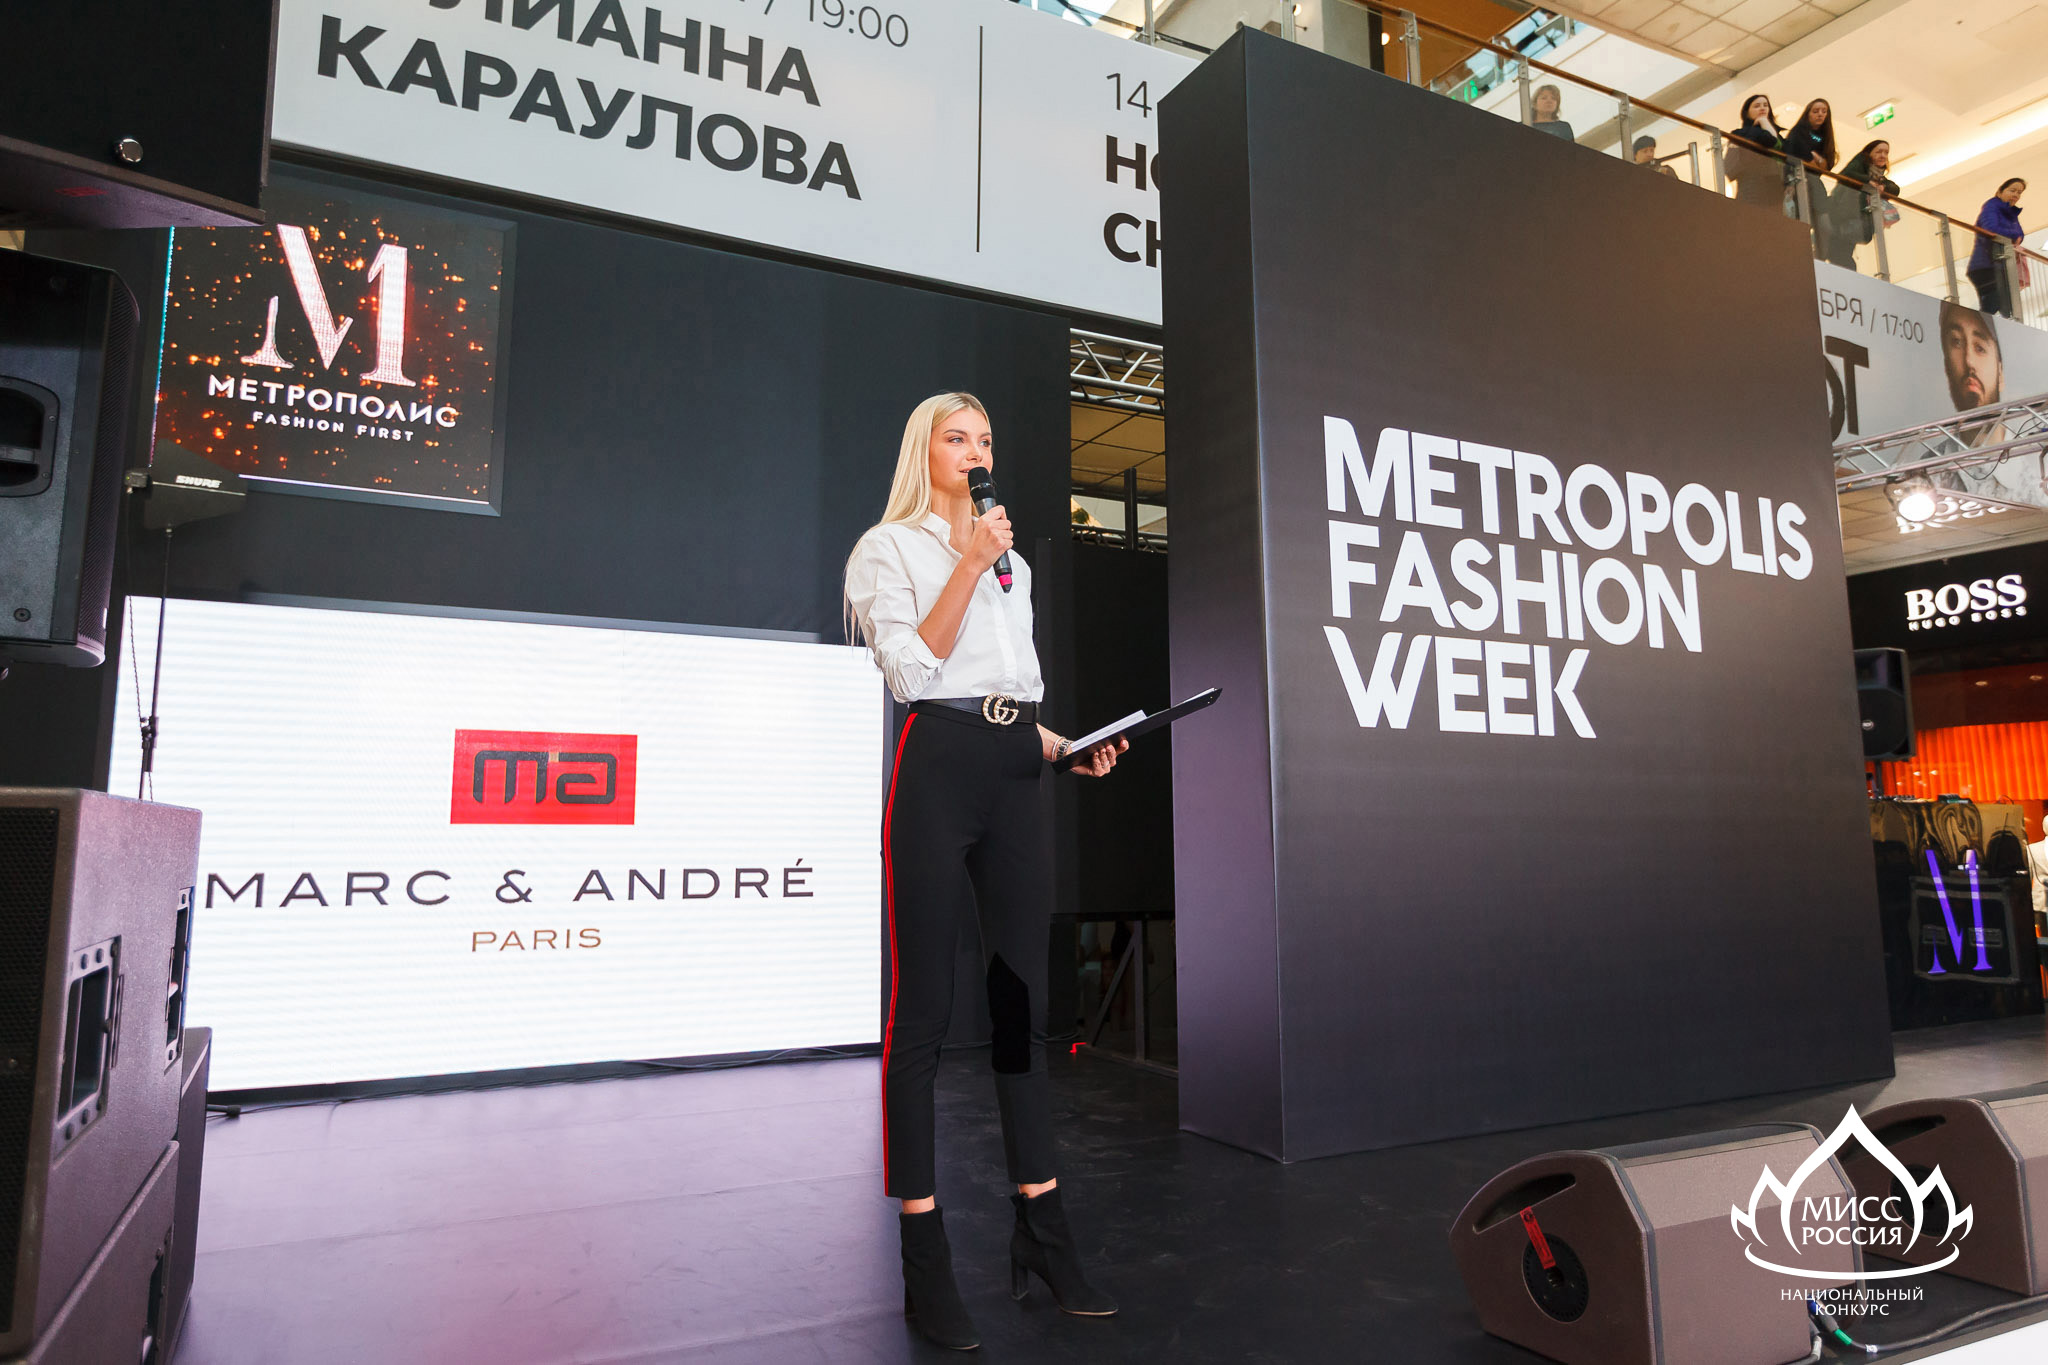 Metropolis Fashion Week